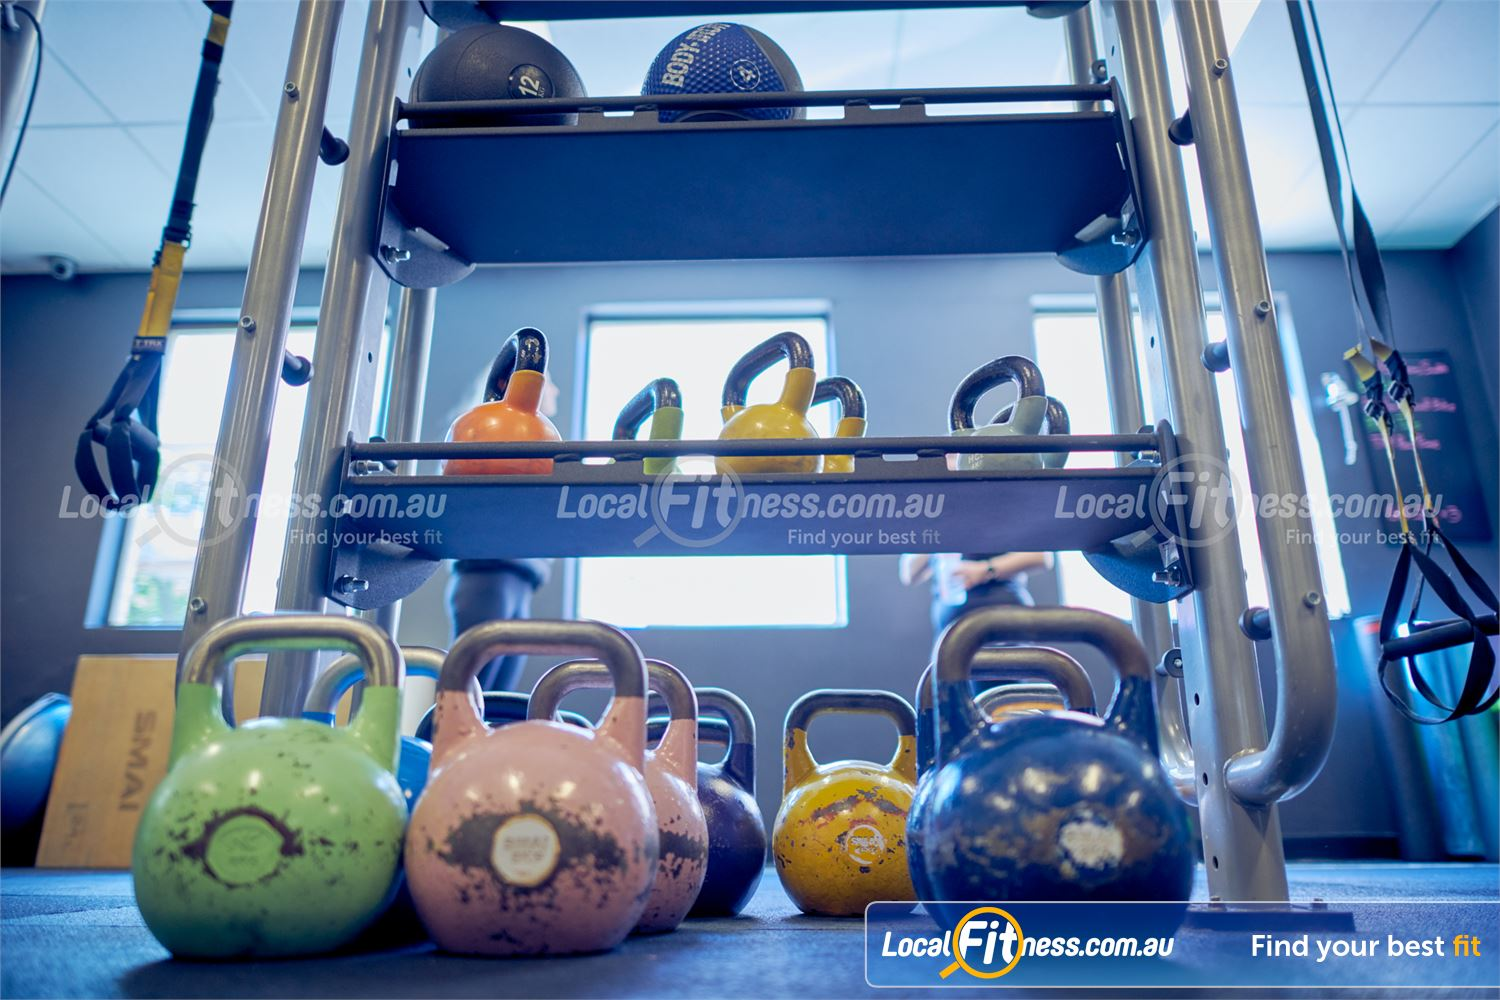 Fernwood Fitness Near Elwood Fully equipped functional area with TRX, Kettlebells, plyo boxes and more.